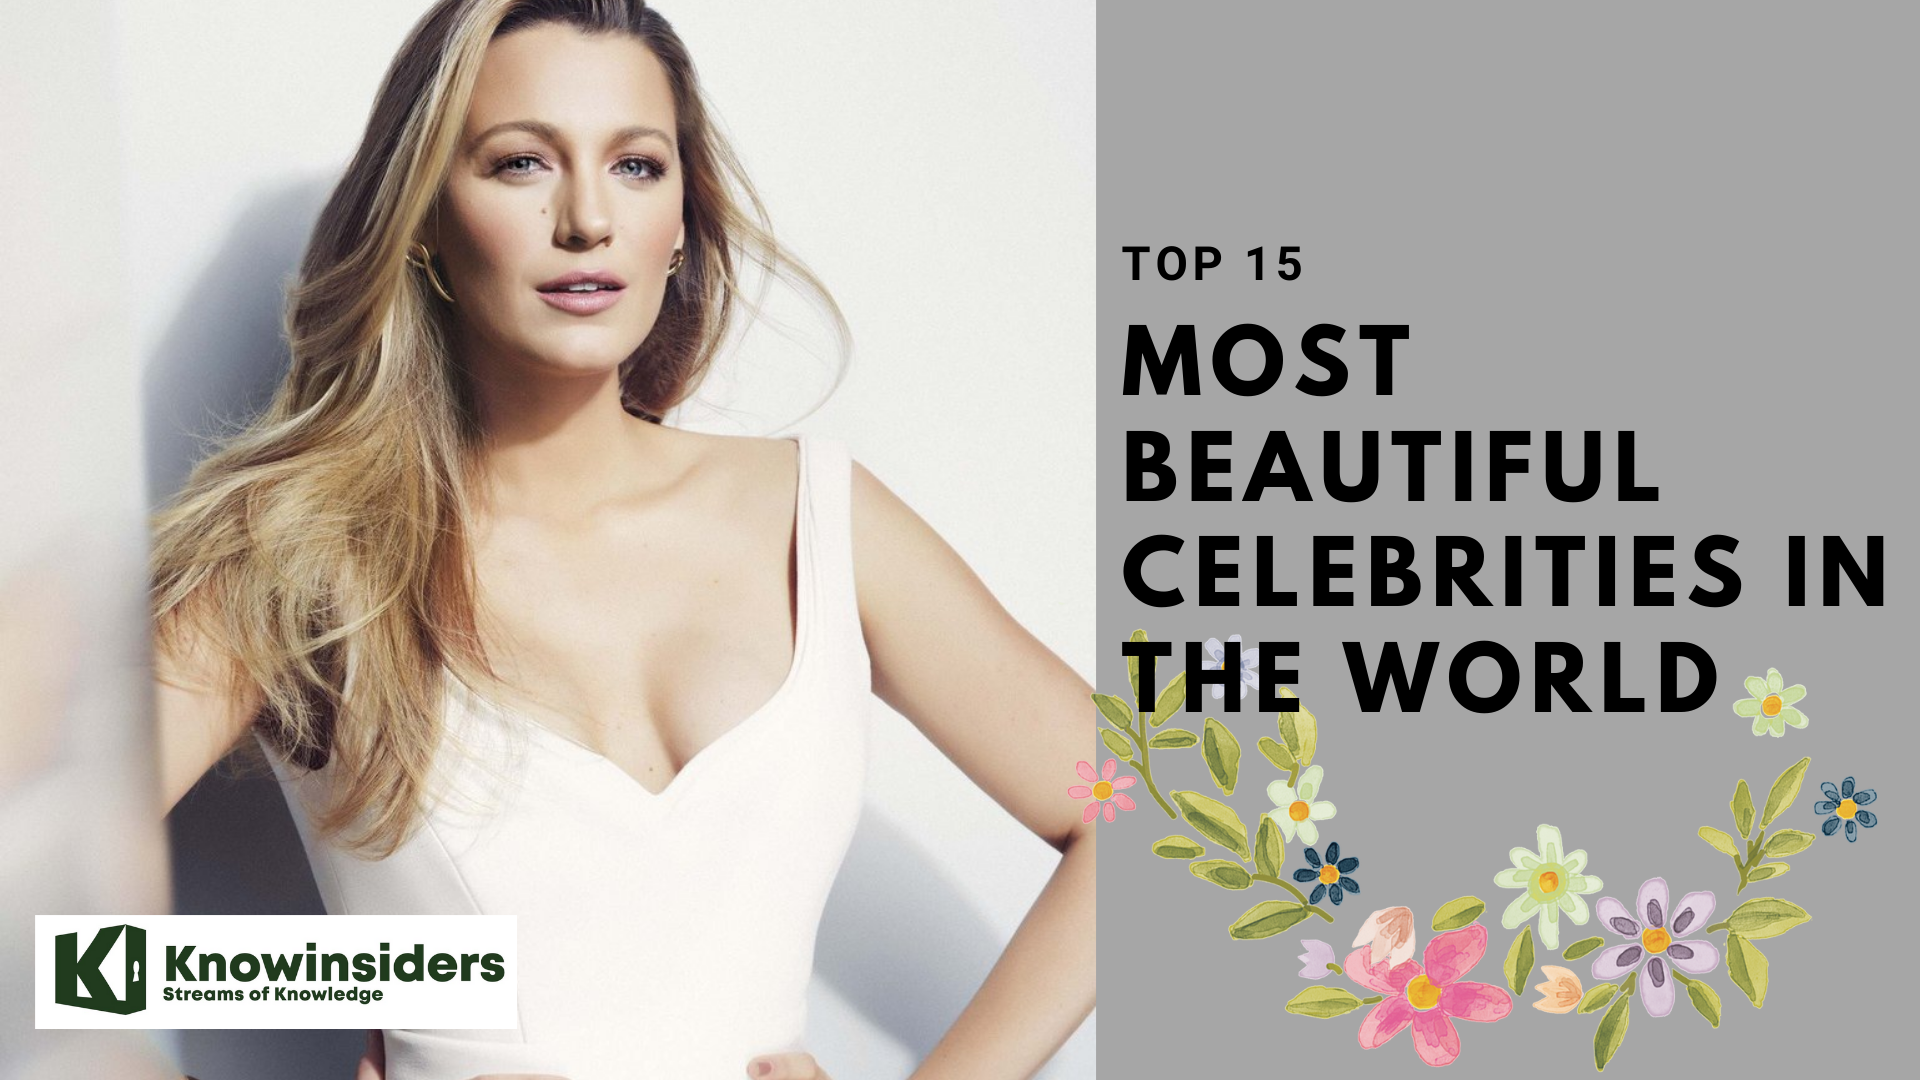 Top 15 Most Beautiful and Hottest Celebrities In The World